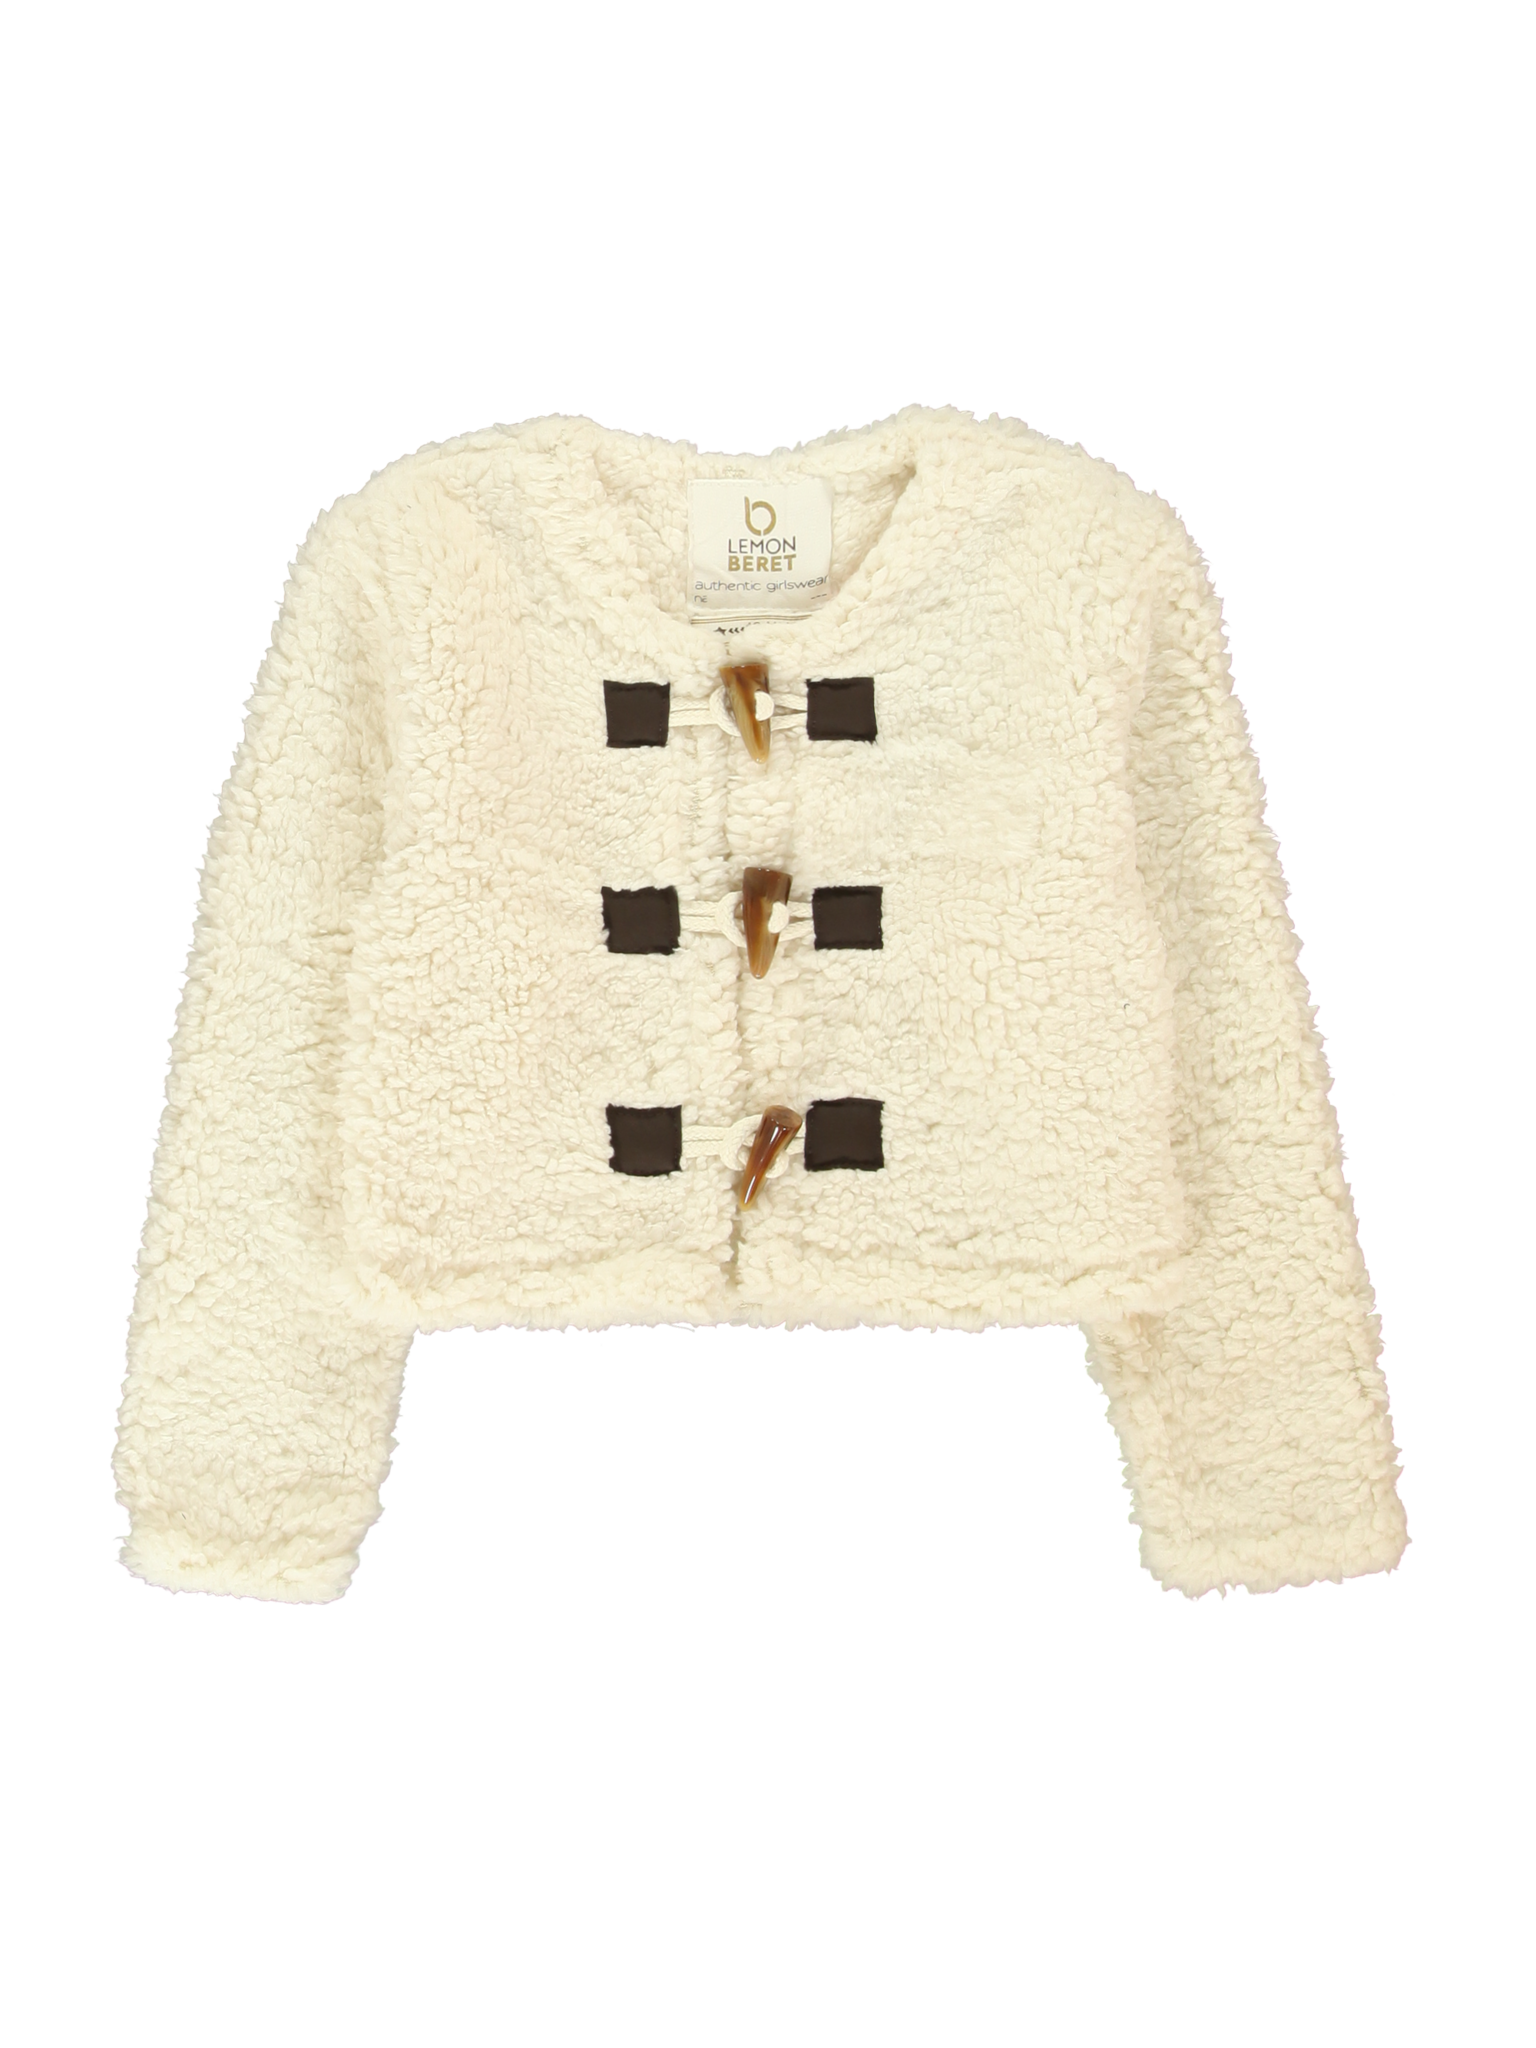 All Brands | Winterproducts Small Girls | Cardigan Sweater | 10 pcs/box